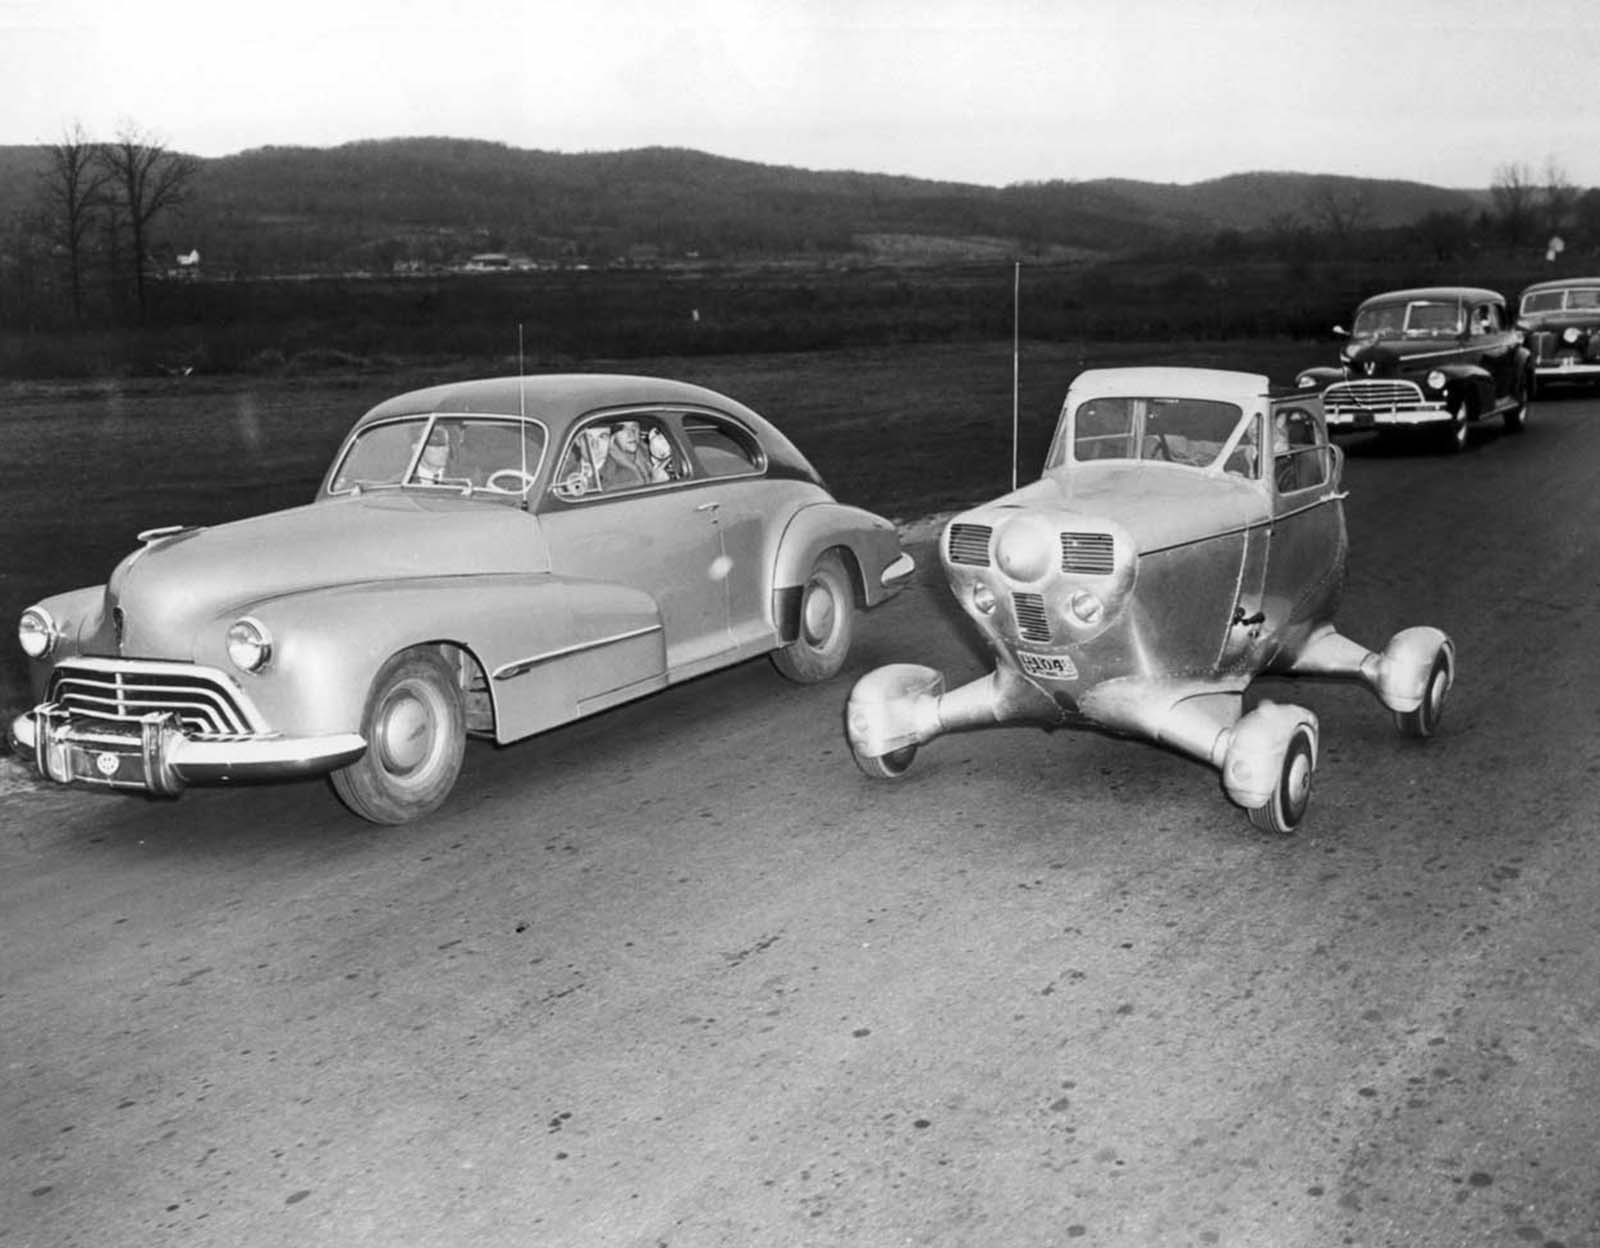 An unconventional American car adapted from the fuselage of a light aircraft. 1948.